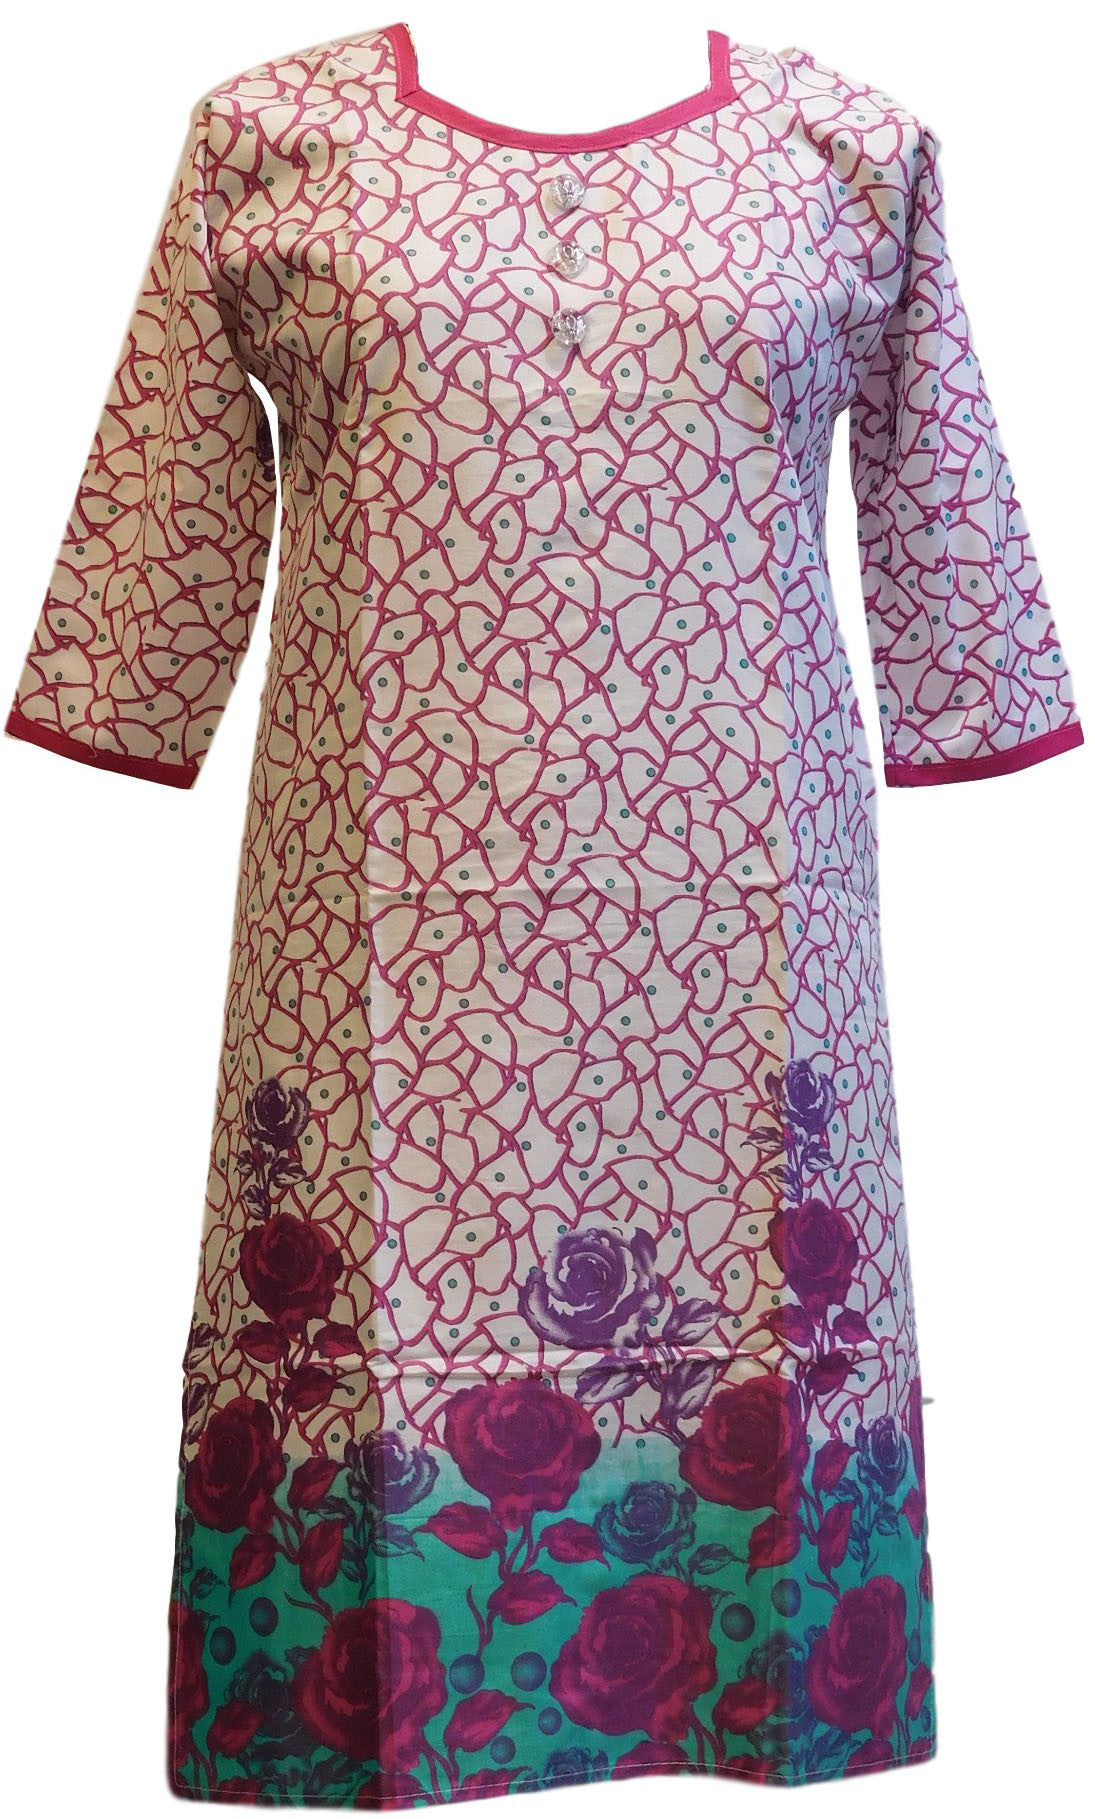 Merron & White Designer Cotton (Chanderi) Printed Kurti